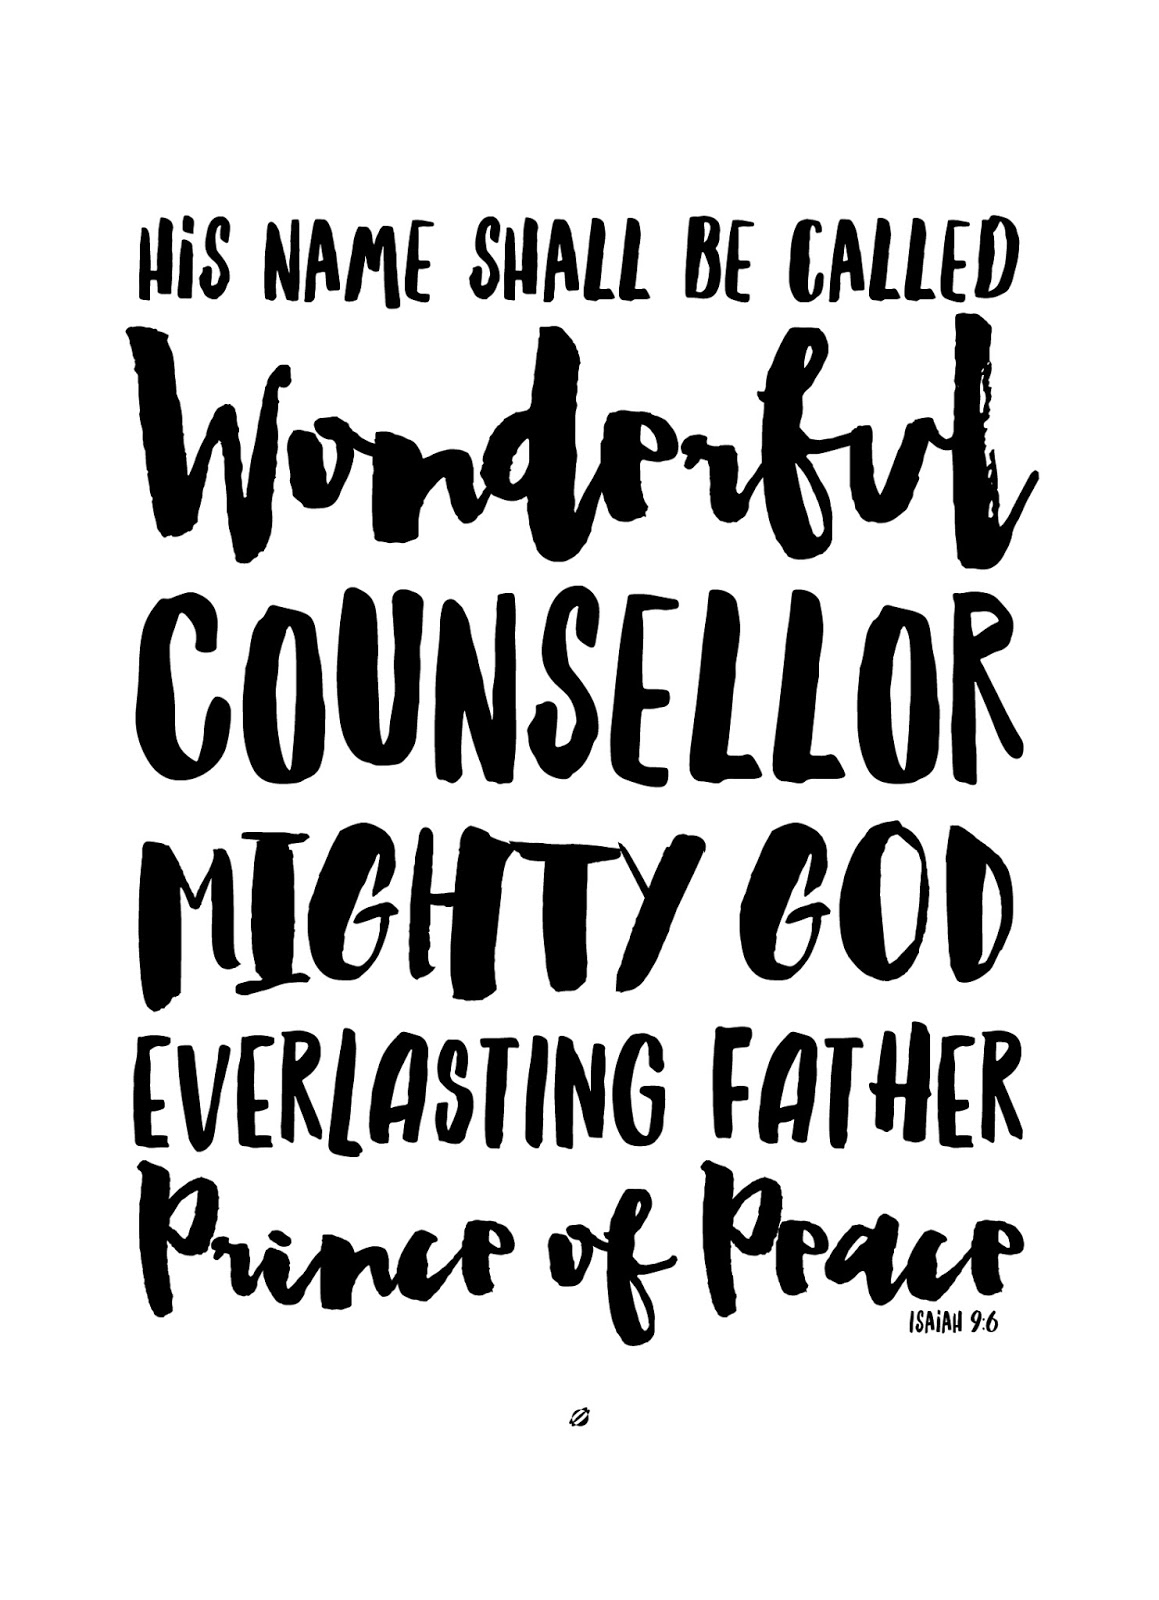 christmas 2016 isaiah 96 5x7 personal use only wwwlostbumblebeenet